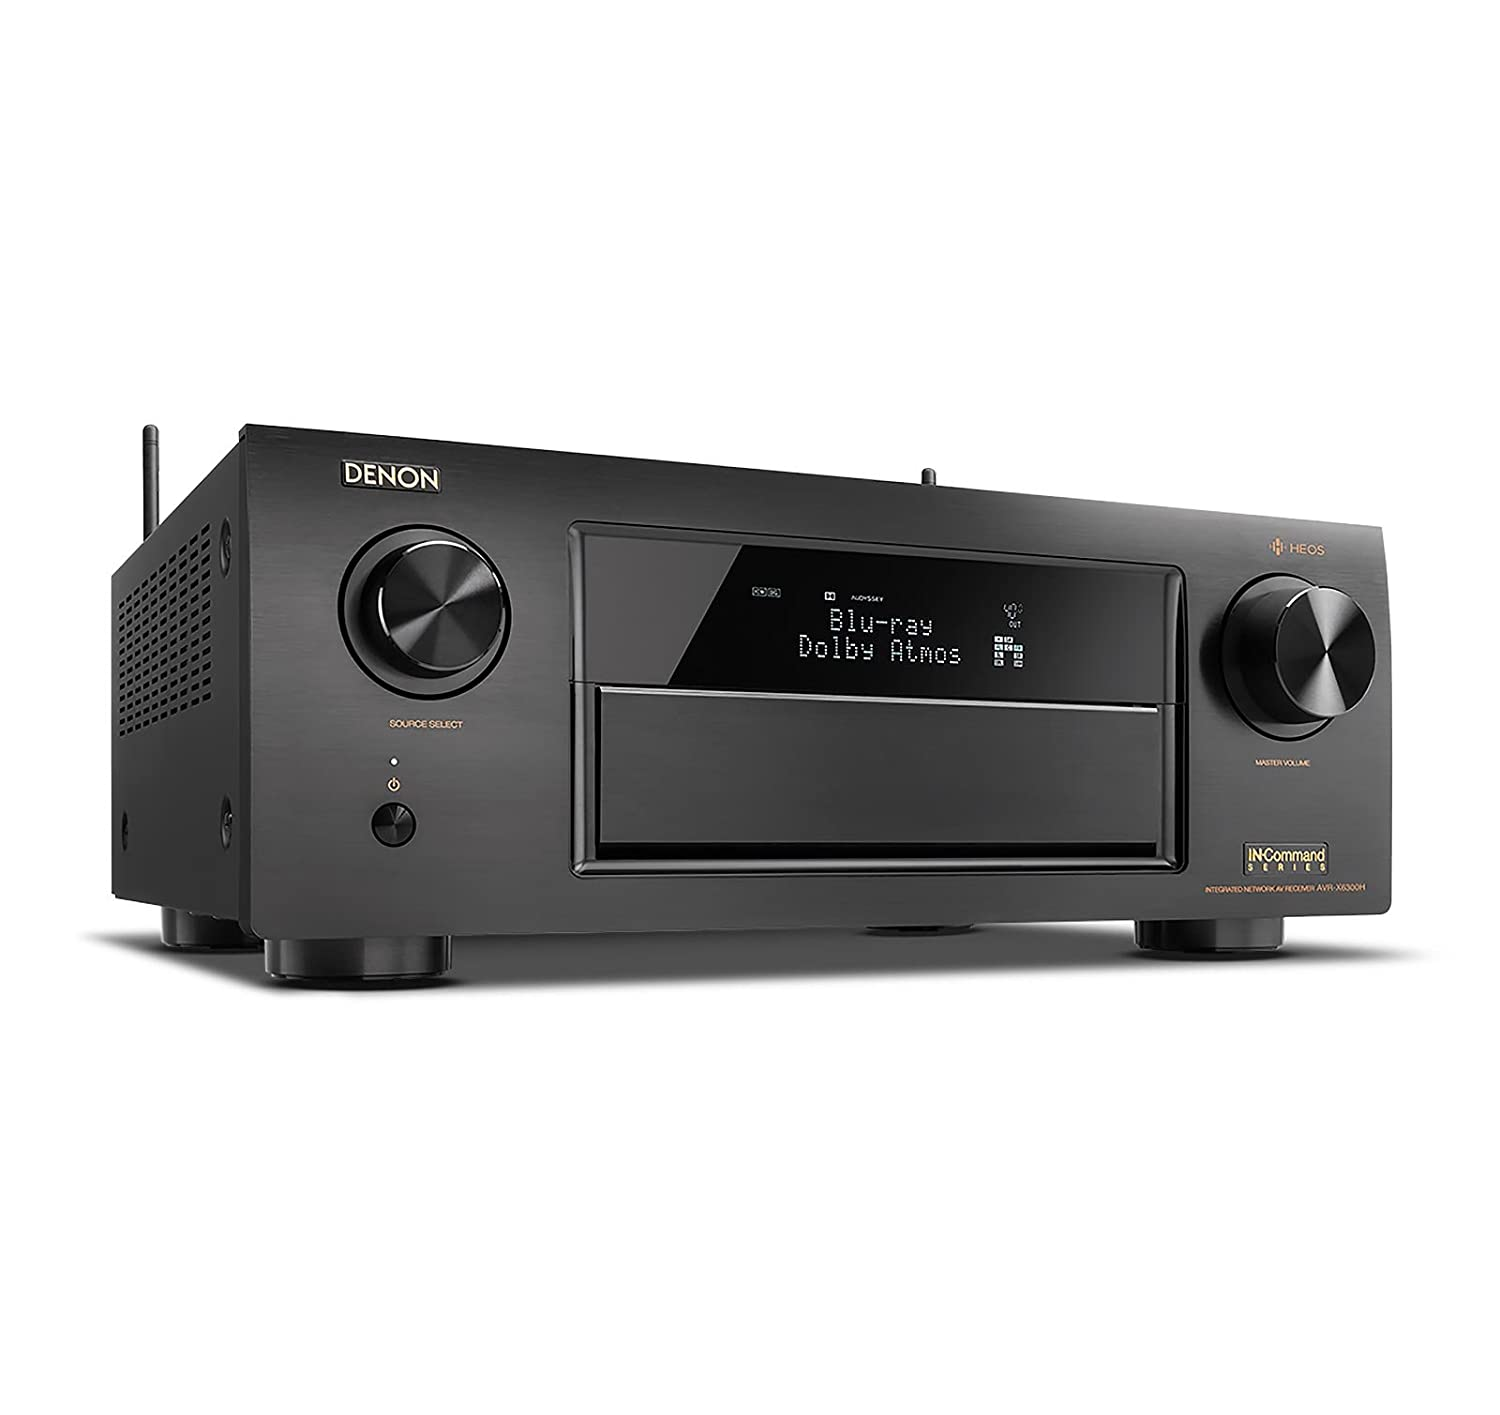 Amazon.com: Denon AVRX6300H 11.2 Channel Full 4K Ultra HD AV Receiver with  Built-in HEOS wireless technology featuring Bluetooth and Wi-Fi, ...